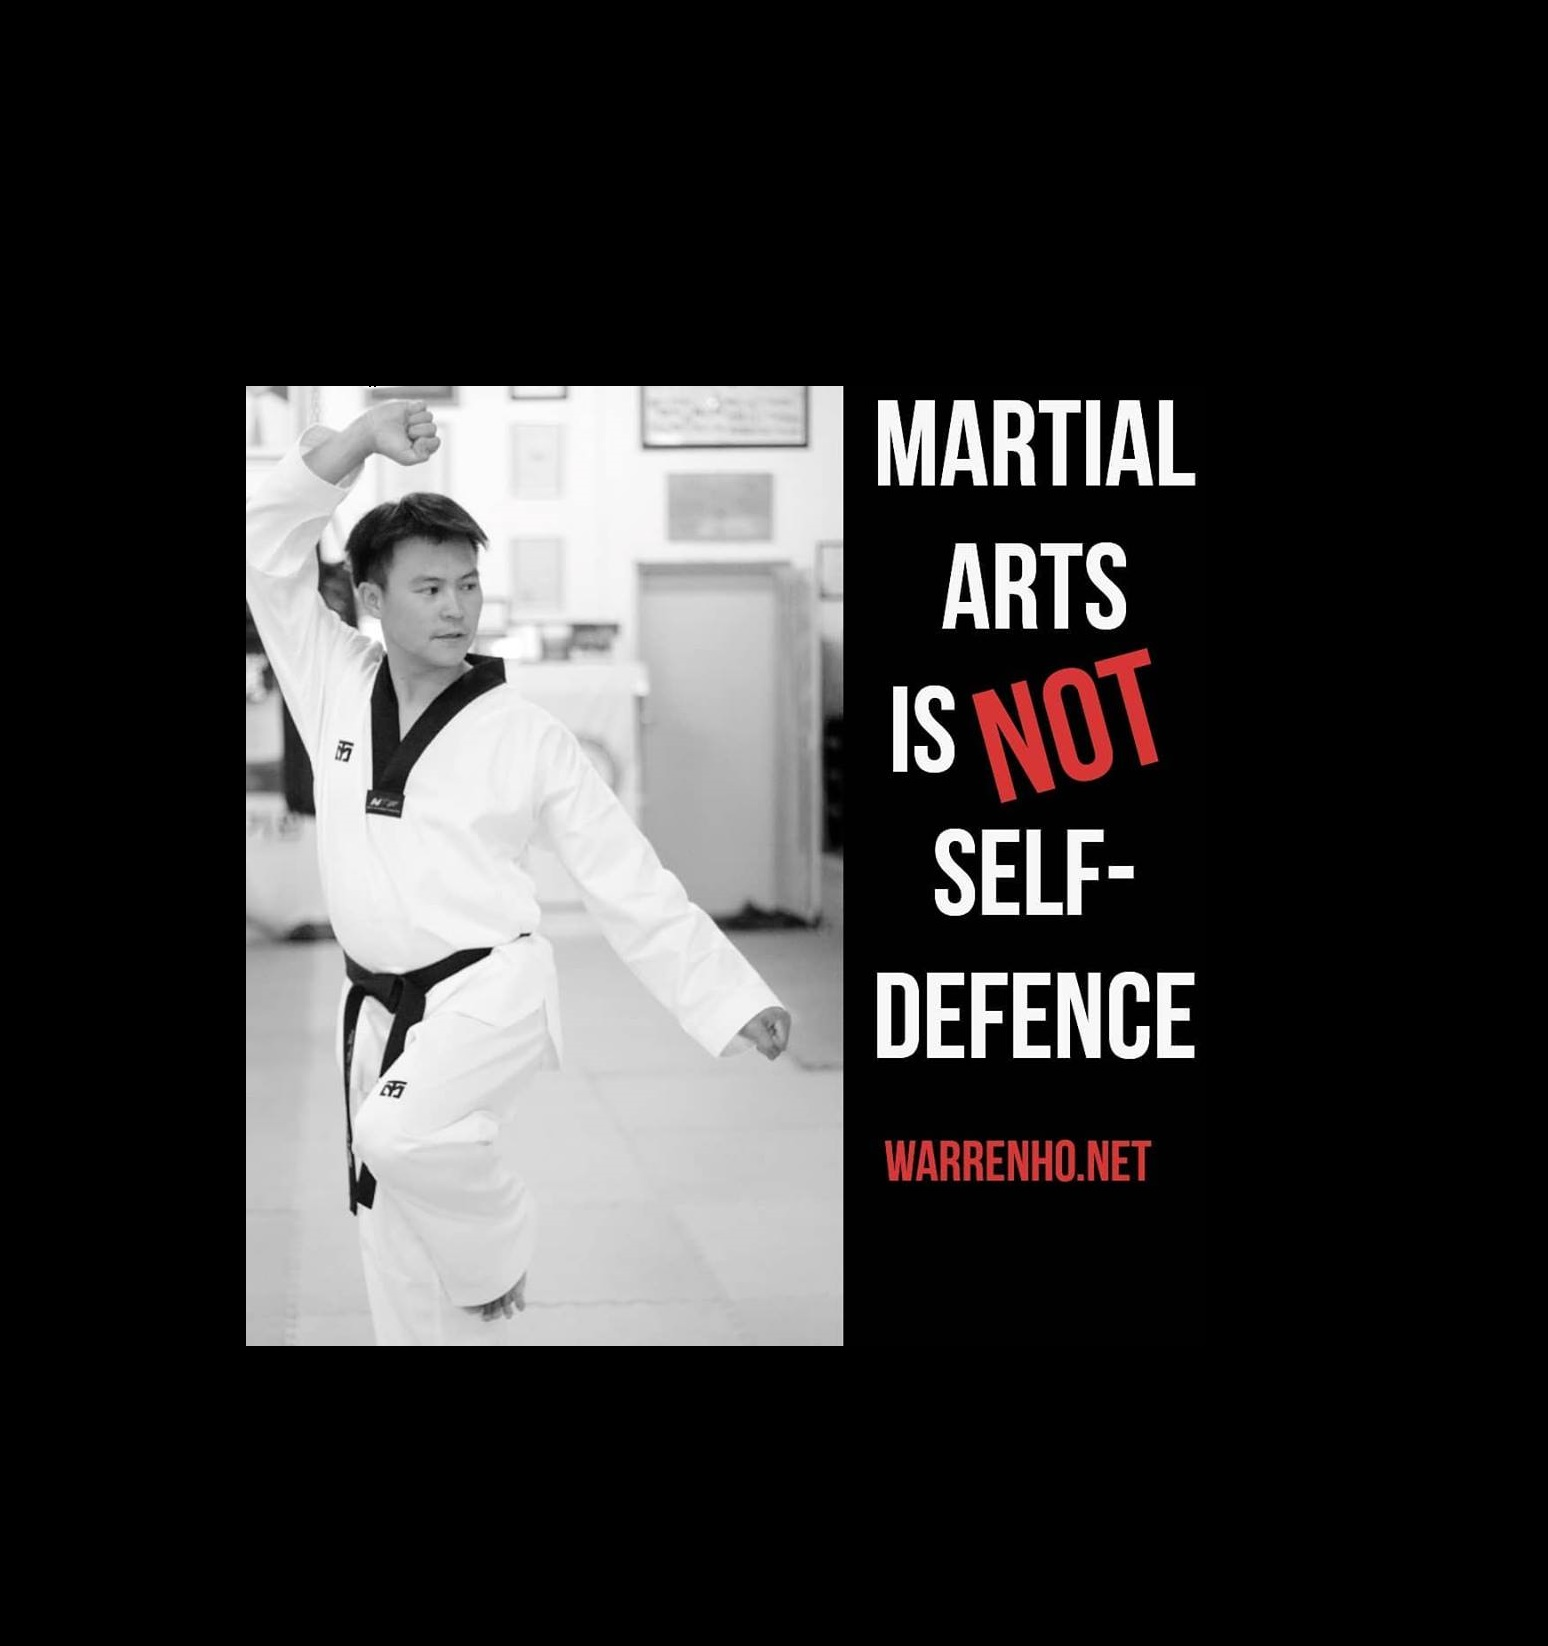 Martial arts is NOT self-defence!